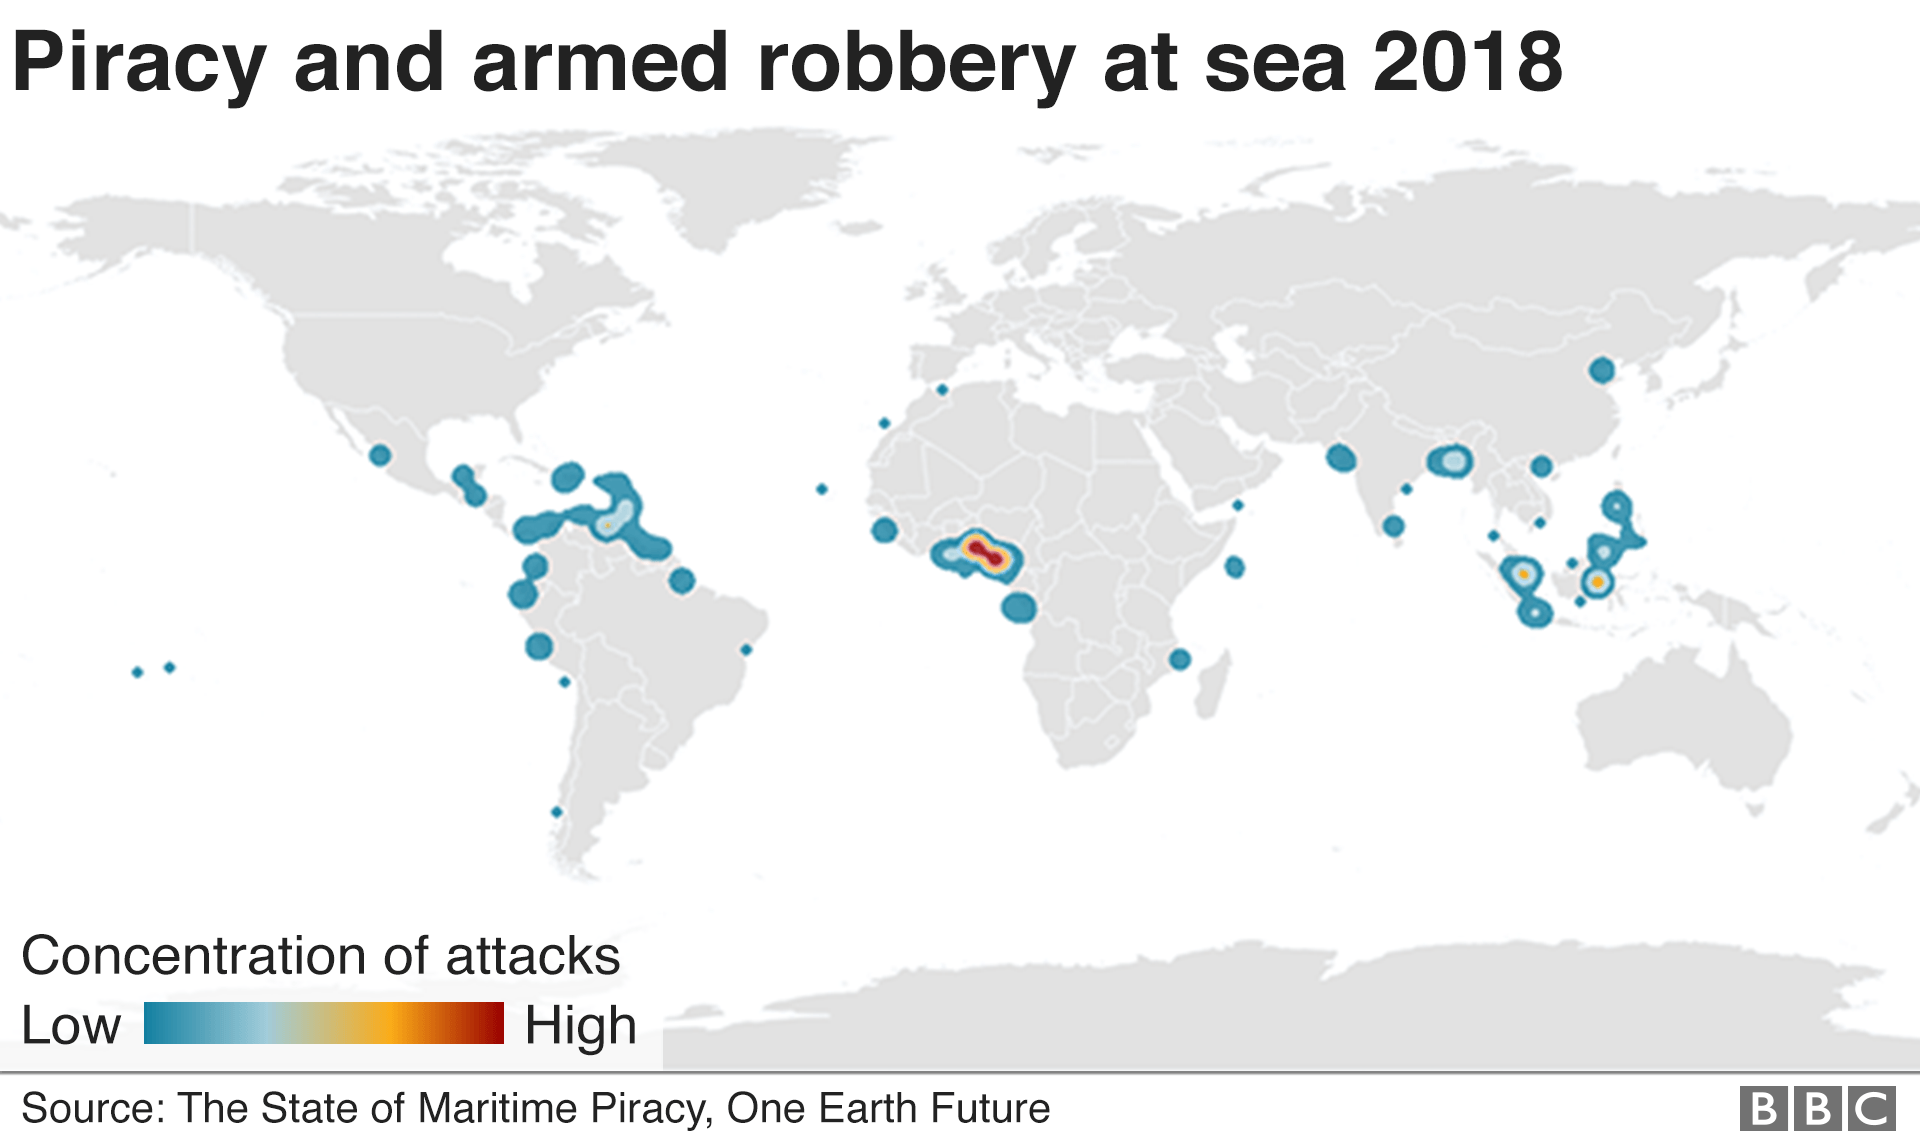 Piracy around the world